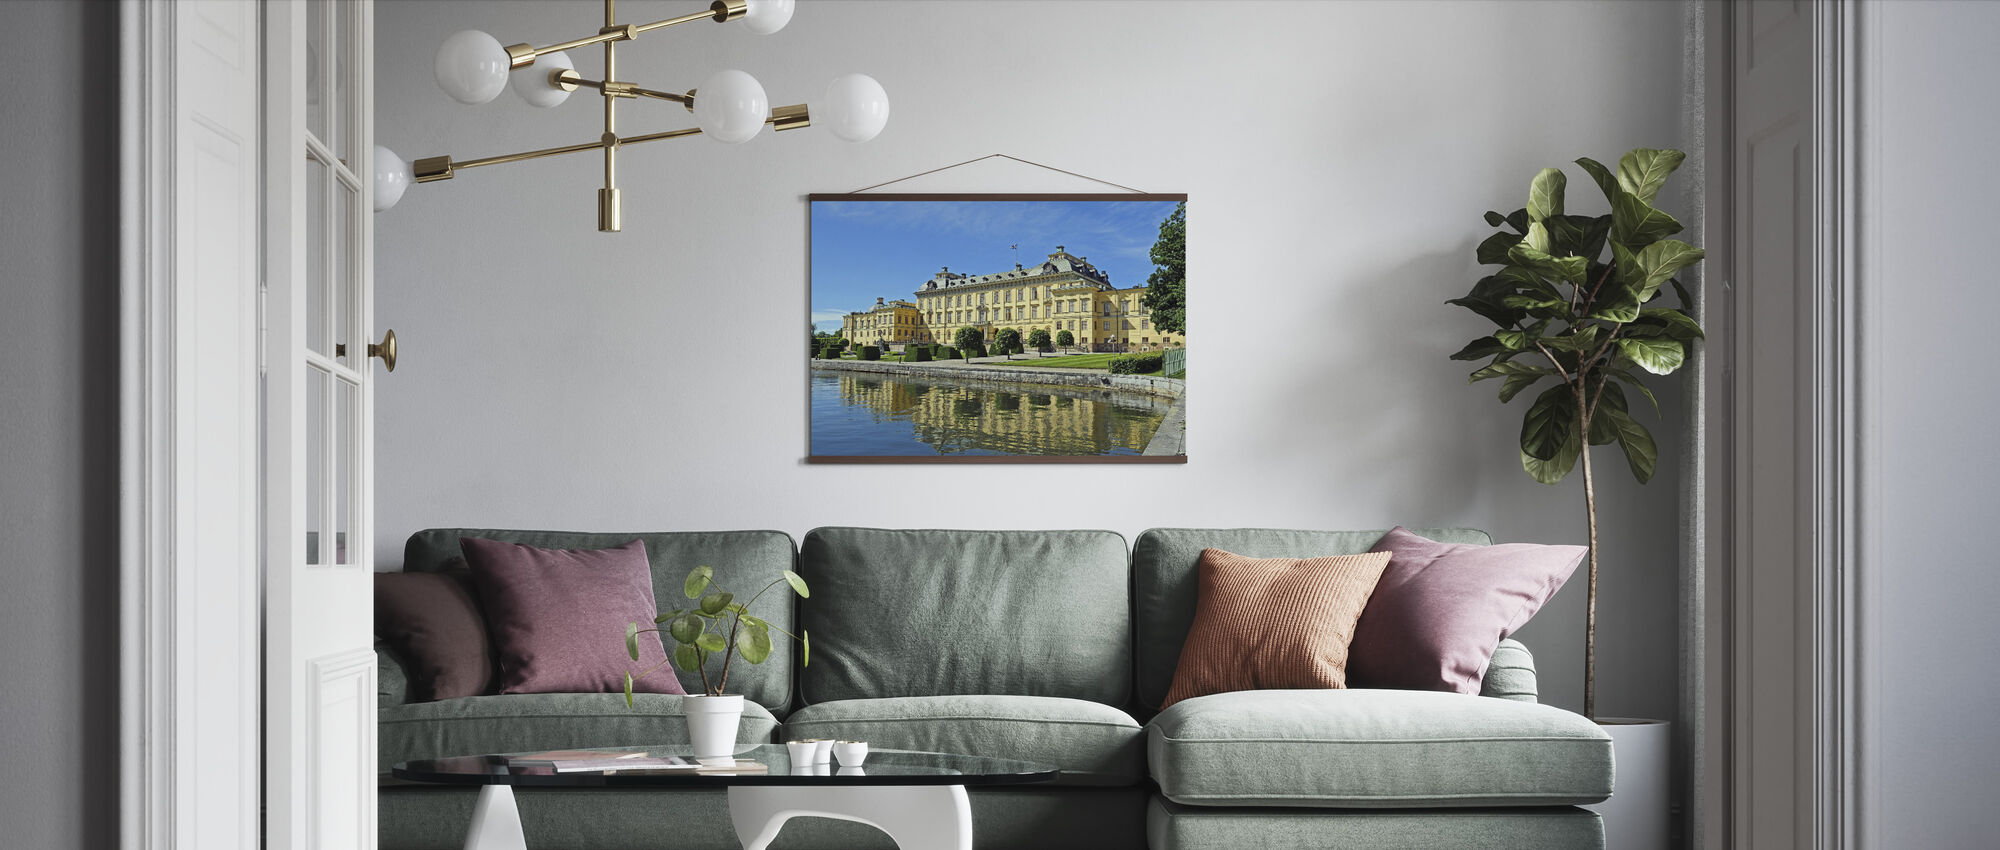 The Royal Palace - Poster - Living Room